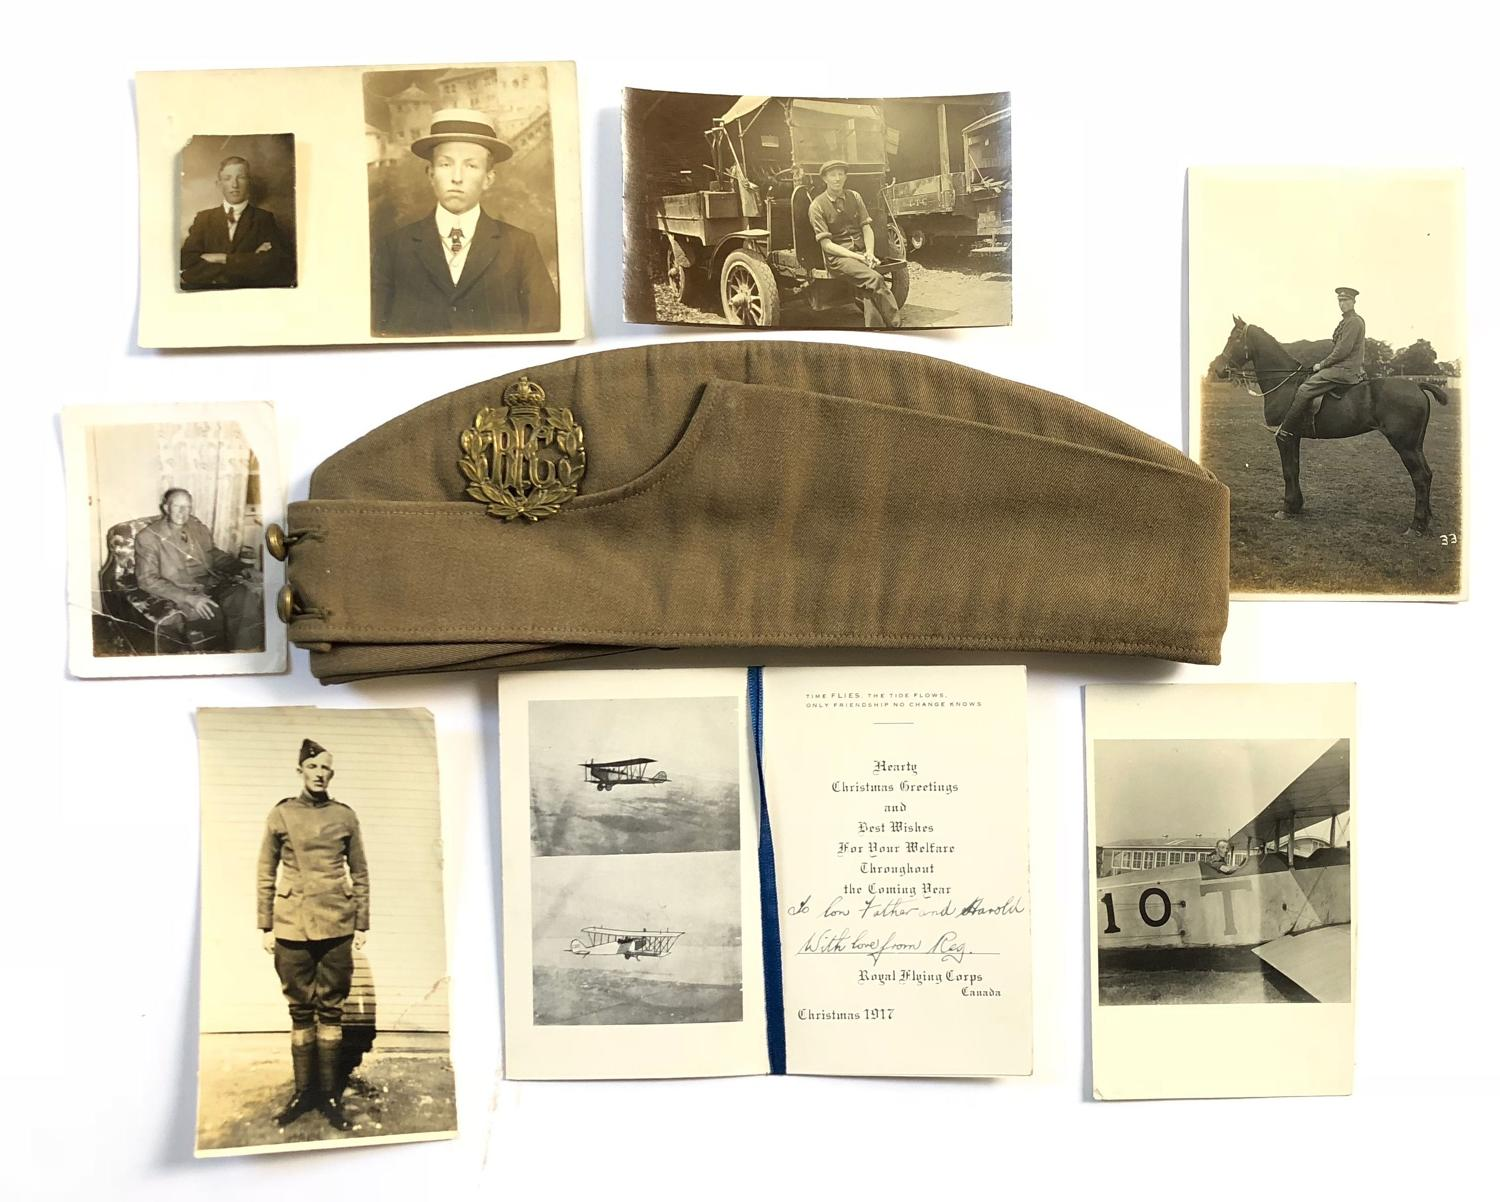 WW1 Royal Flying Corps Canada Attributed Field Service Cap & Ephemera.